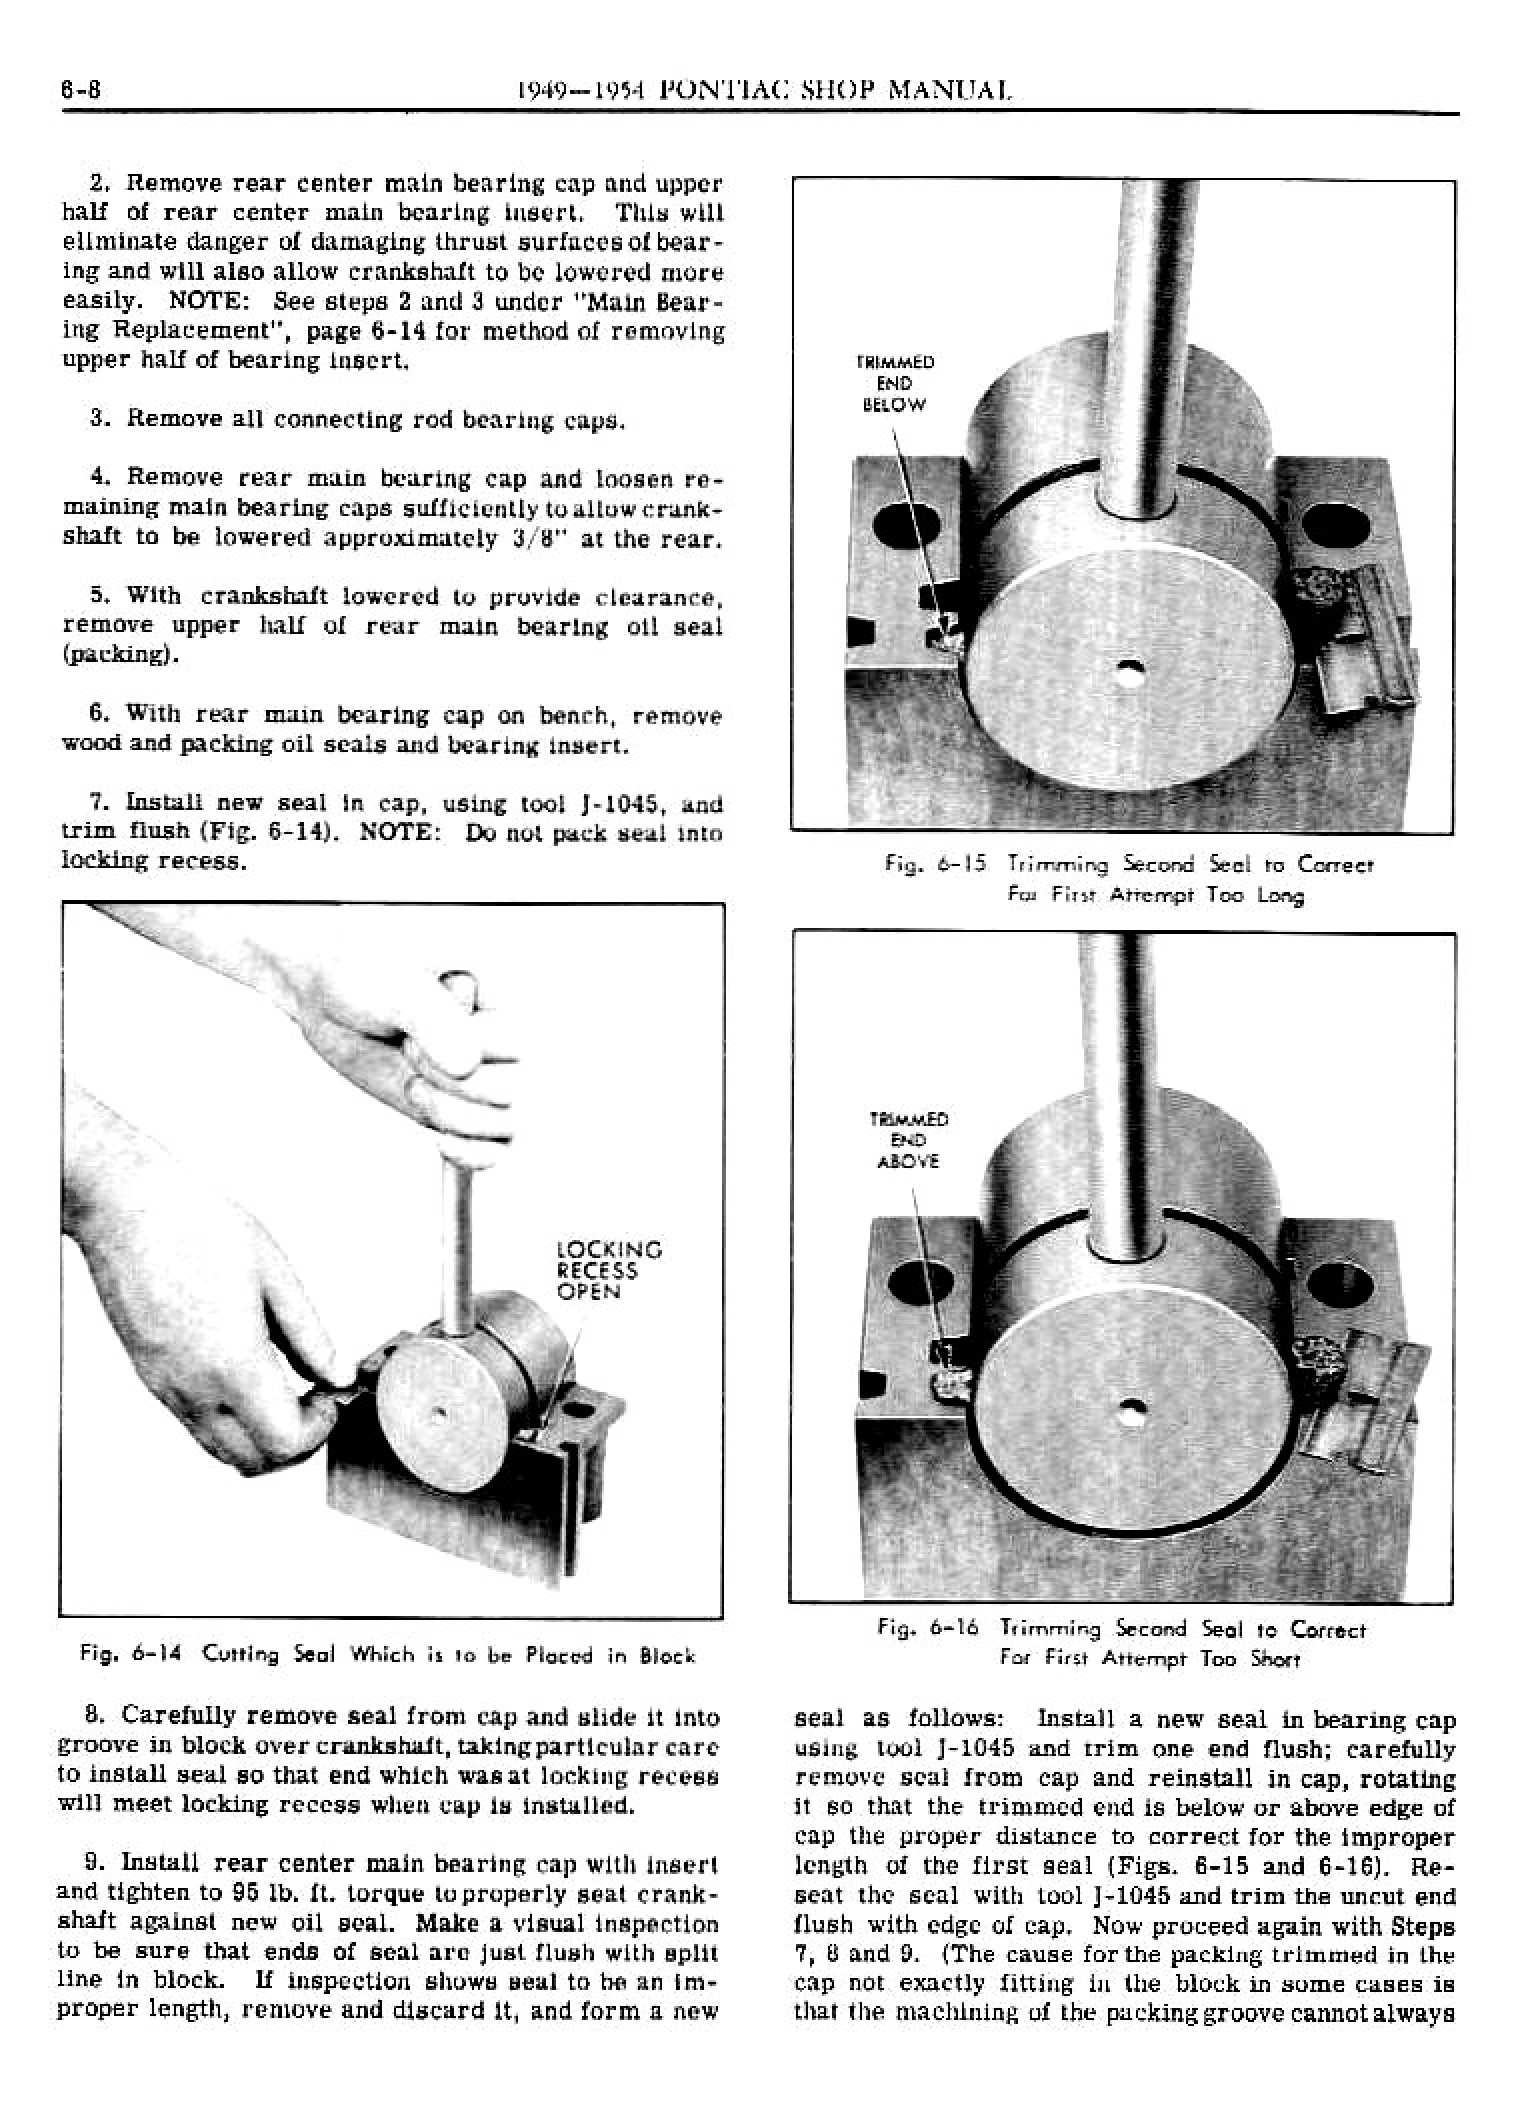 1949 Pontiac Shop Manual- Engine Mechanical Page 8 of 26